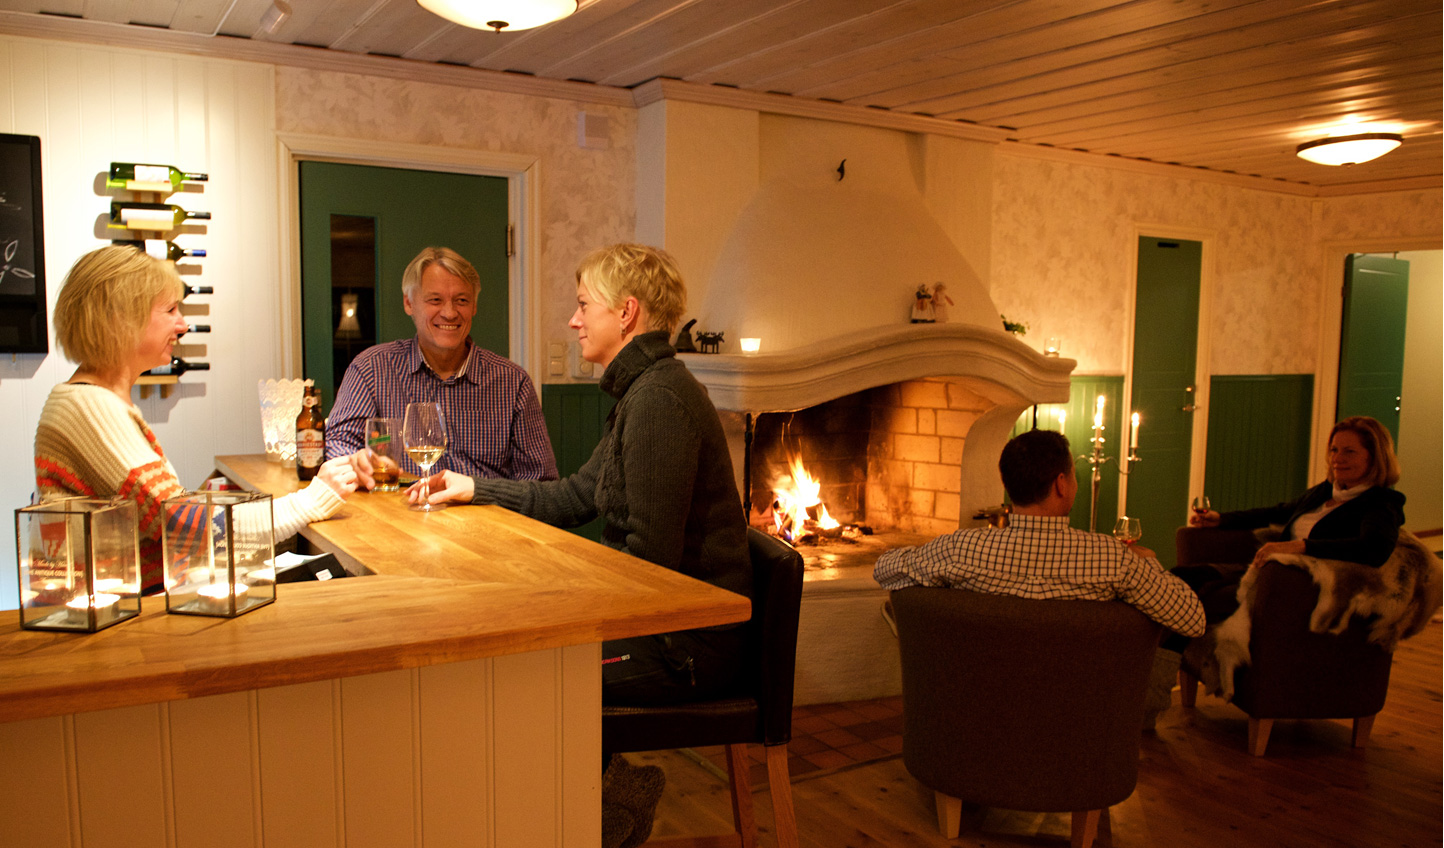 Cosy up by the fire or have a drink at the bar